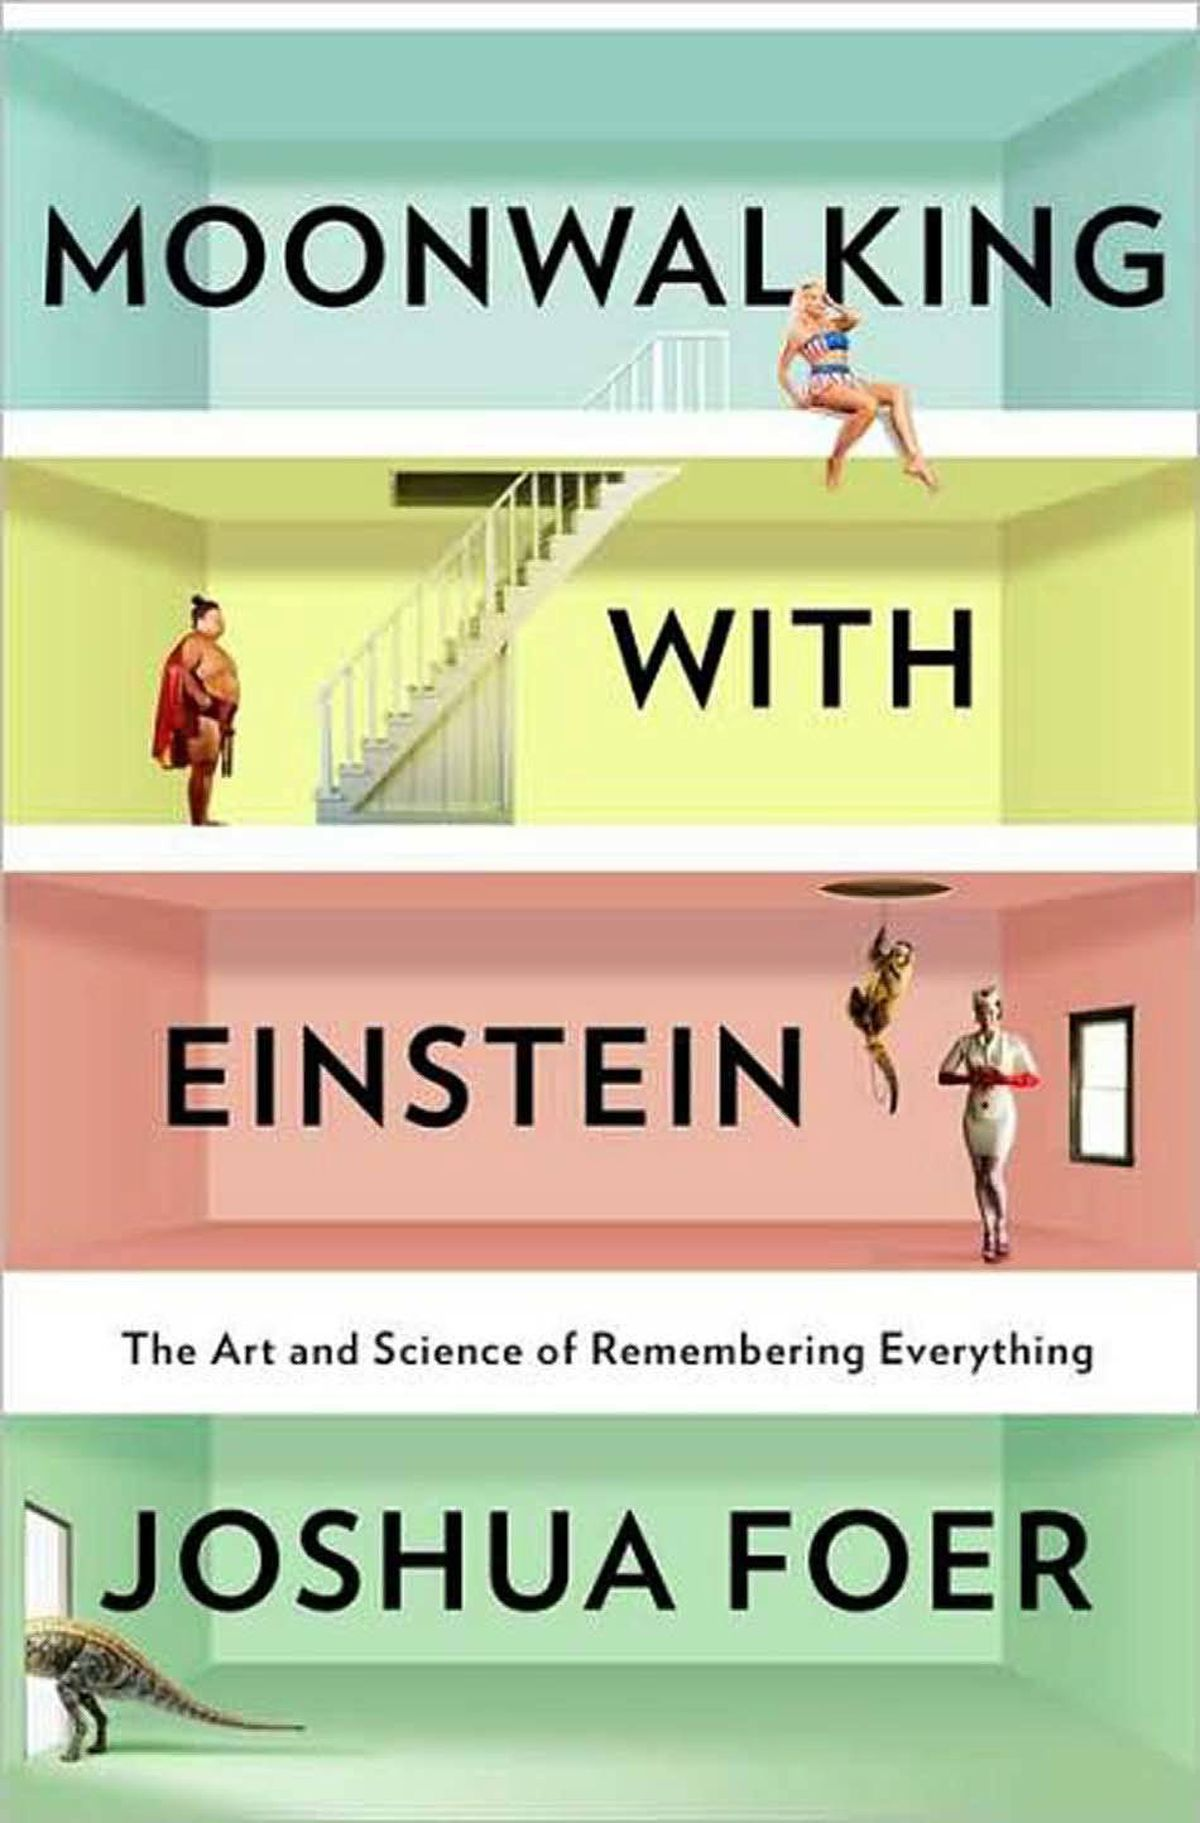 MOONWALKING WITH EINSTEIN The Art and Science of Remembering Everything By Joshua Foer (Penguin Press) This erudite and charming first book finds Foer, dissatisfied with his own forgetful memory, training for the 2006 U.S. Memory Championship. The story follows Foer as he ramps up his training, interspersed with a survey course on the history of memory, from the Greeks to MRIs, and his encounters with modern masters of memory. – Siobhan Roberts